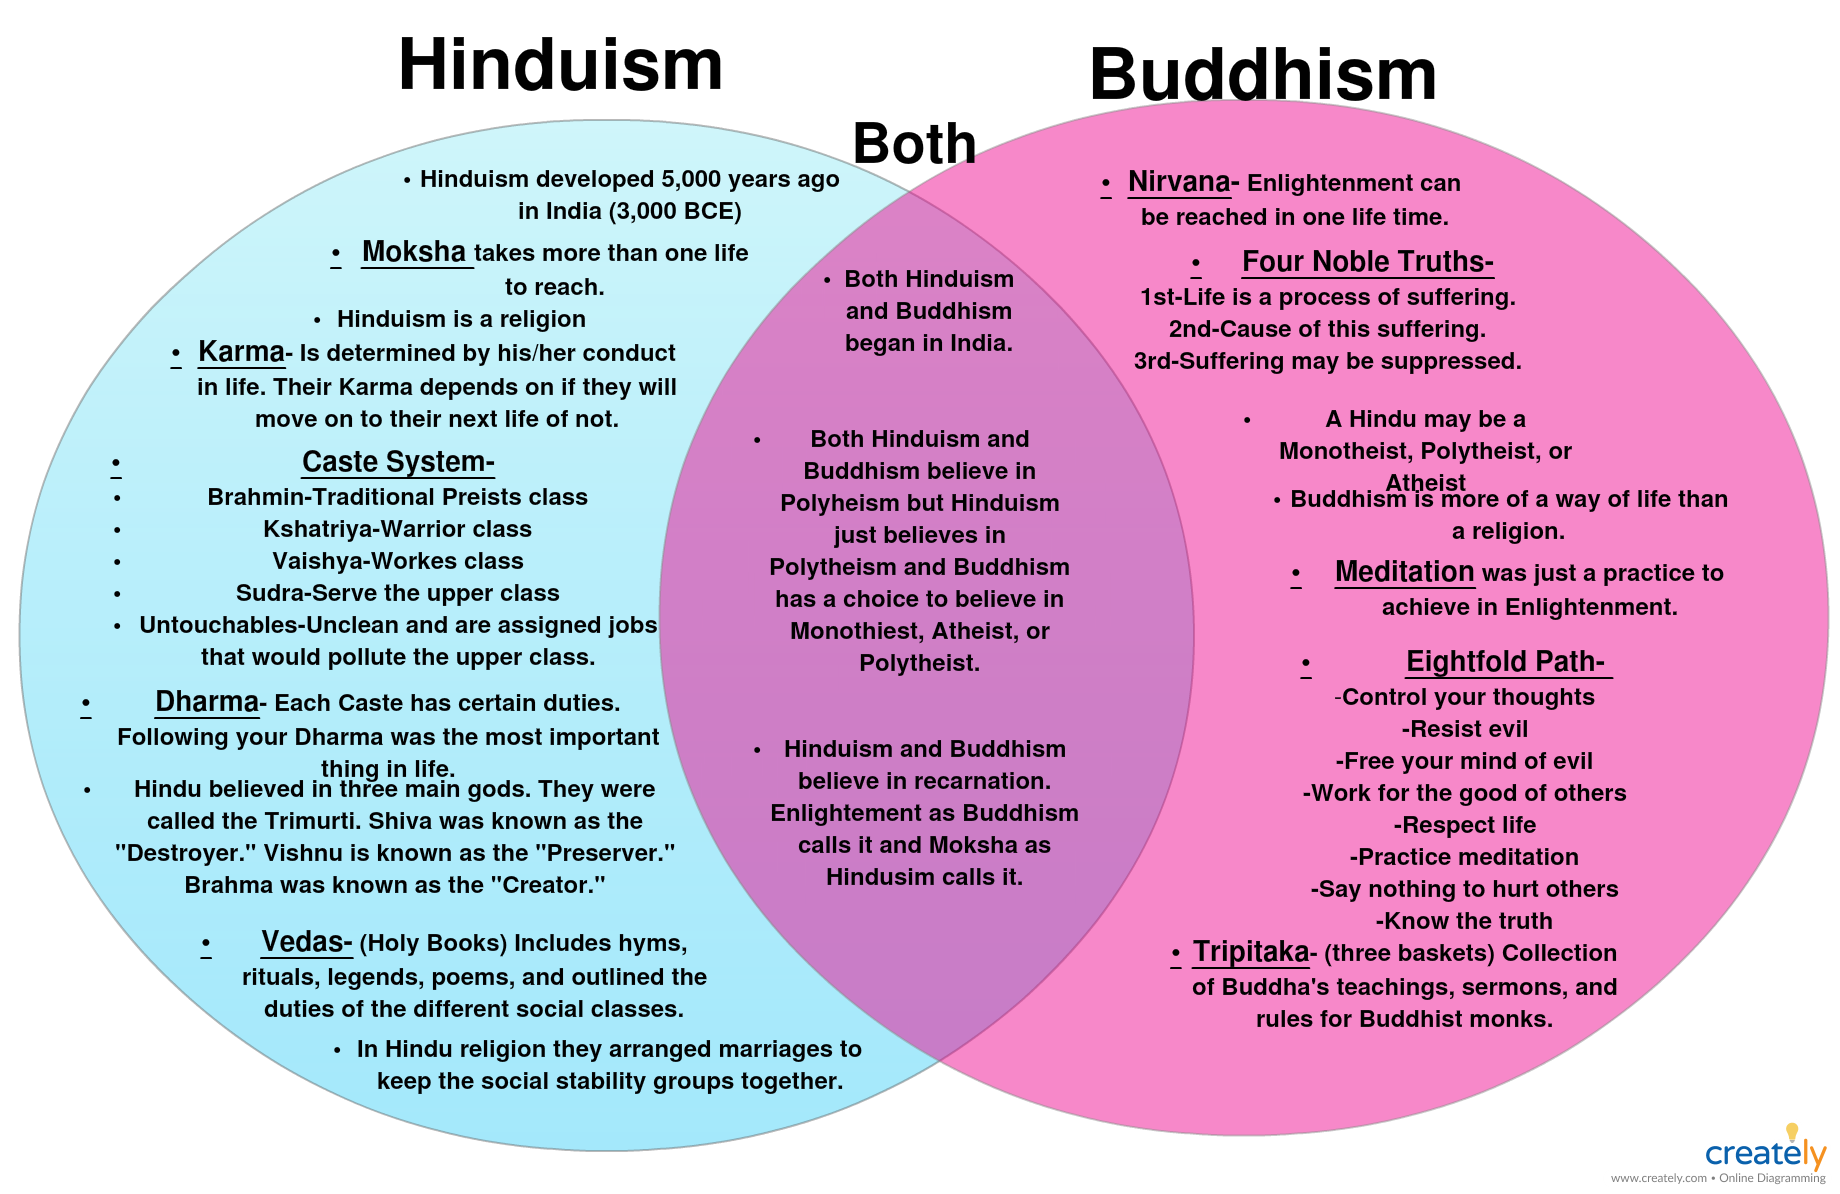 venn diagrams shows the similarities between hinduism and buddhism you can use this example for a class project or and educational purposes by simply  [ 1840 x 1194 Pixel ]